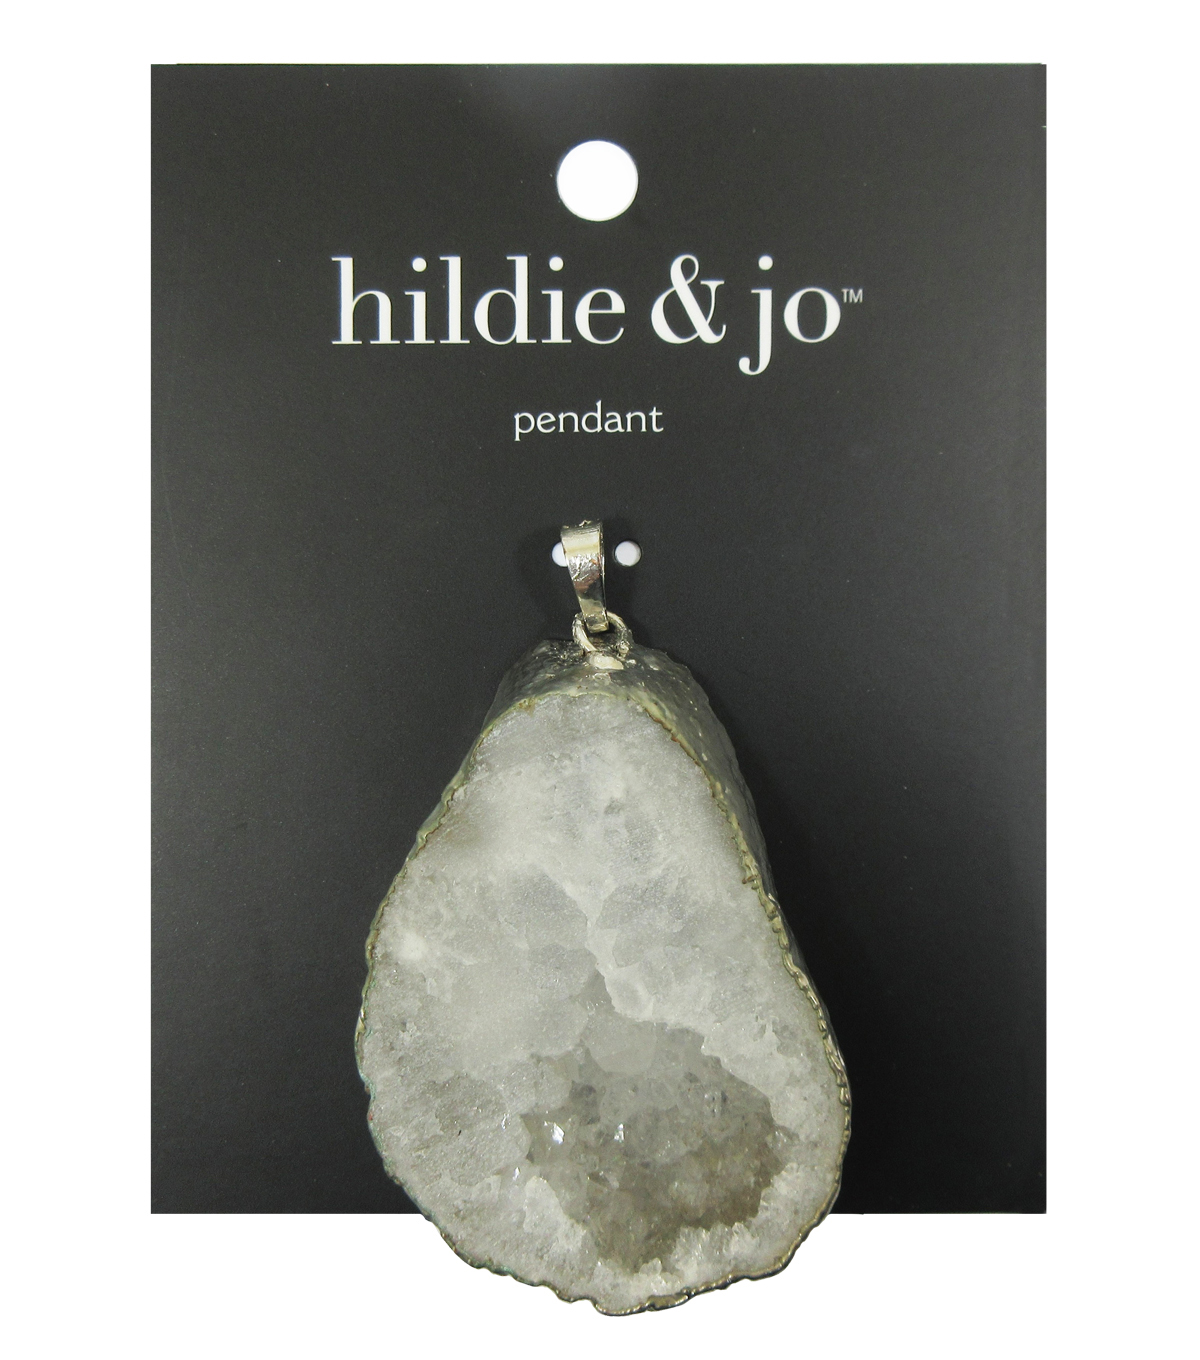 hildie & jo Effortless Charm Silver Pendant-Druzy White